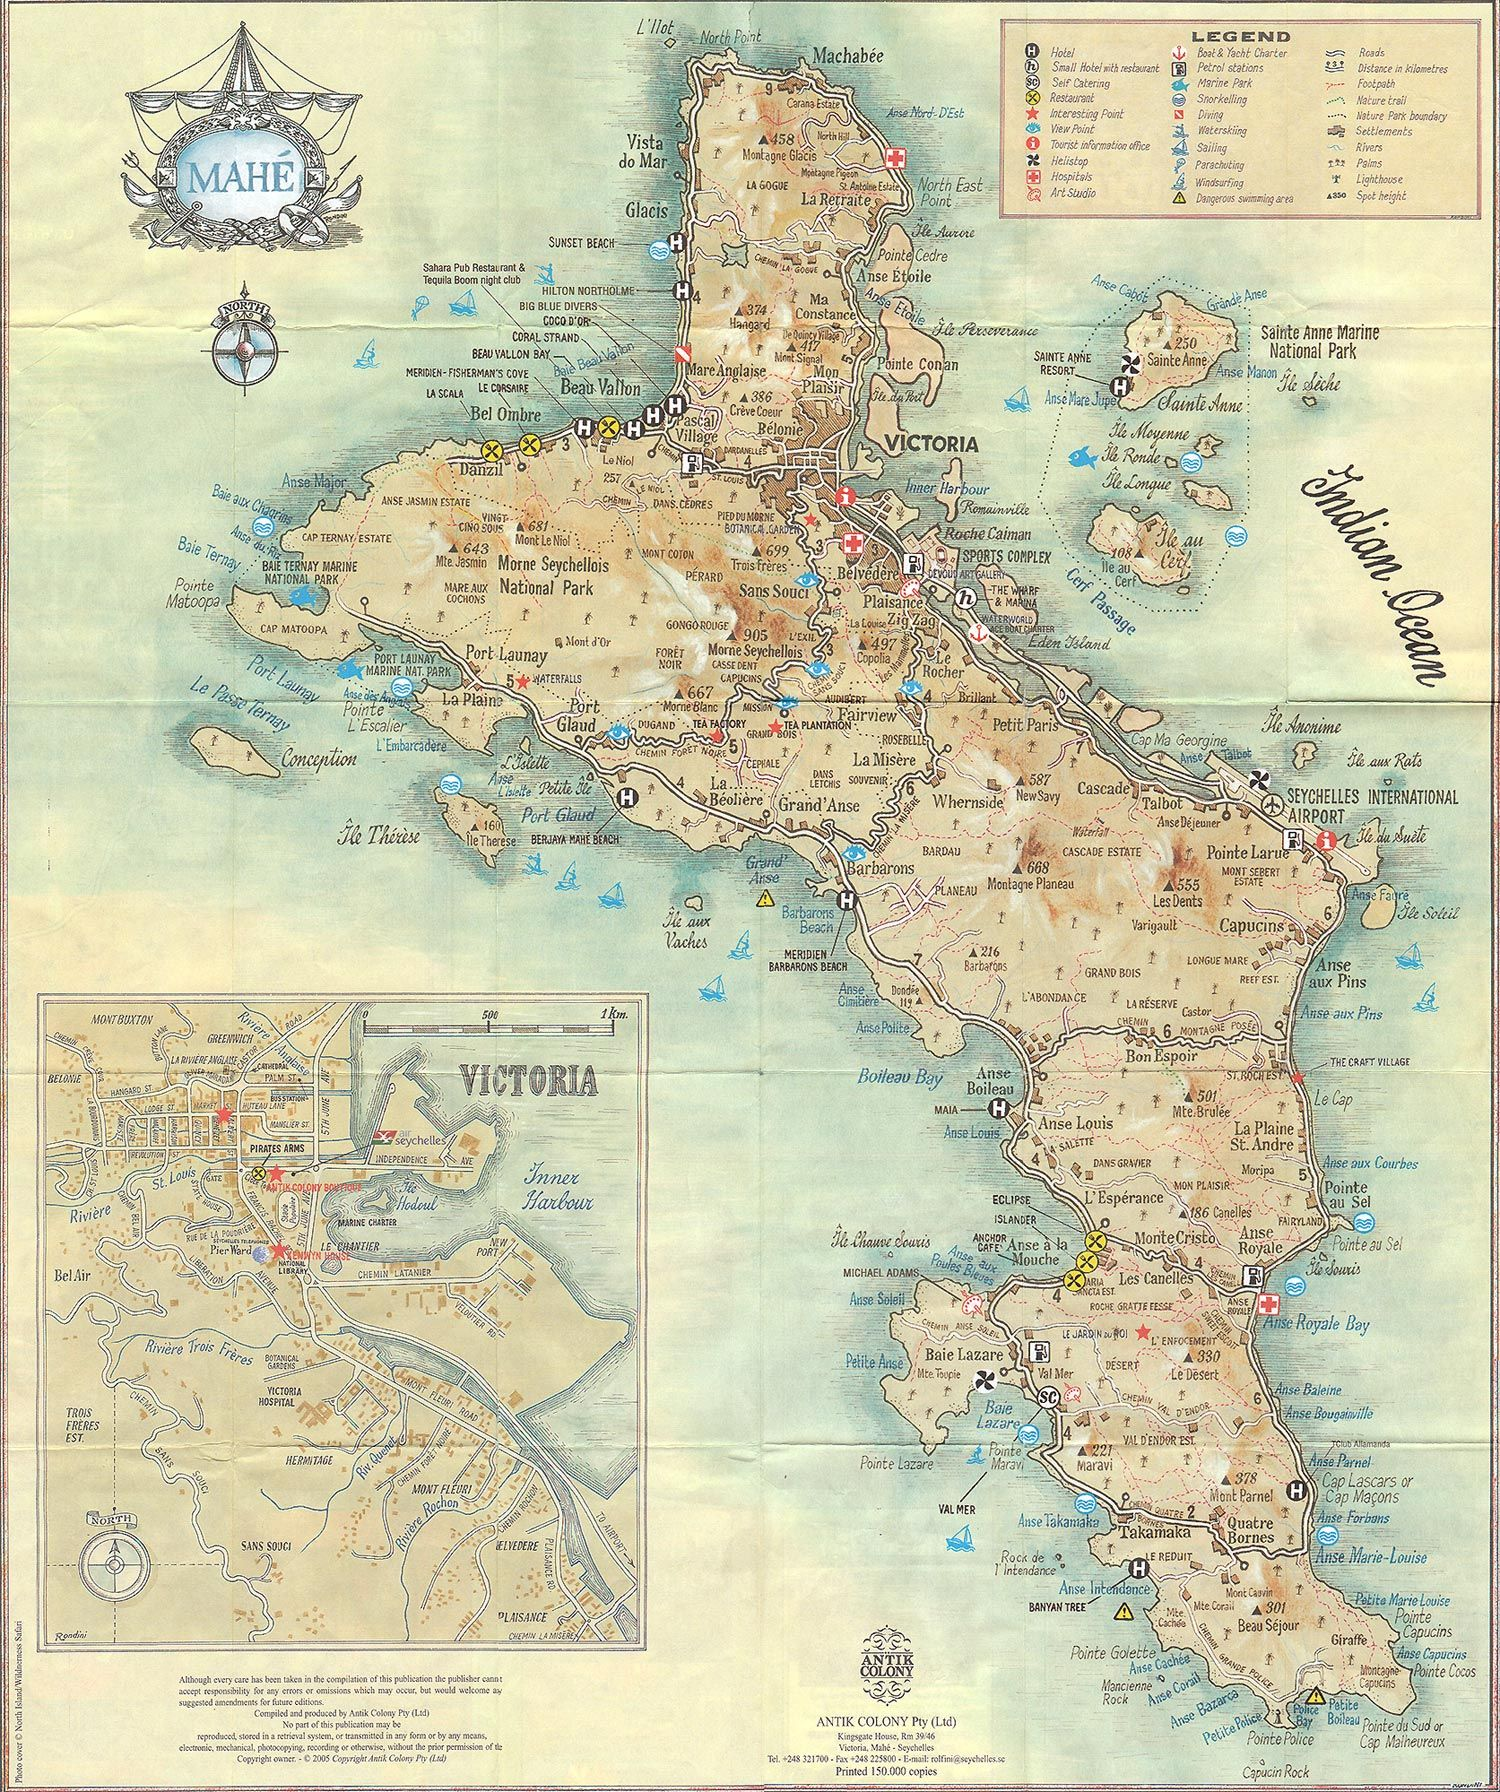 Mahé Island Seychelles By Antik Colony Map Seychelles Старые - Where is seychelles in the world